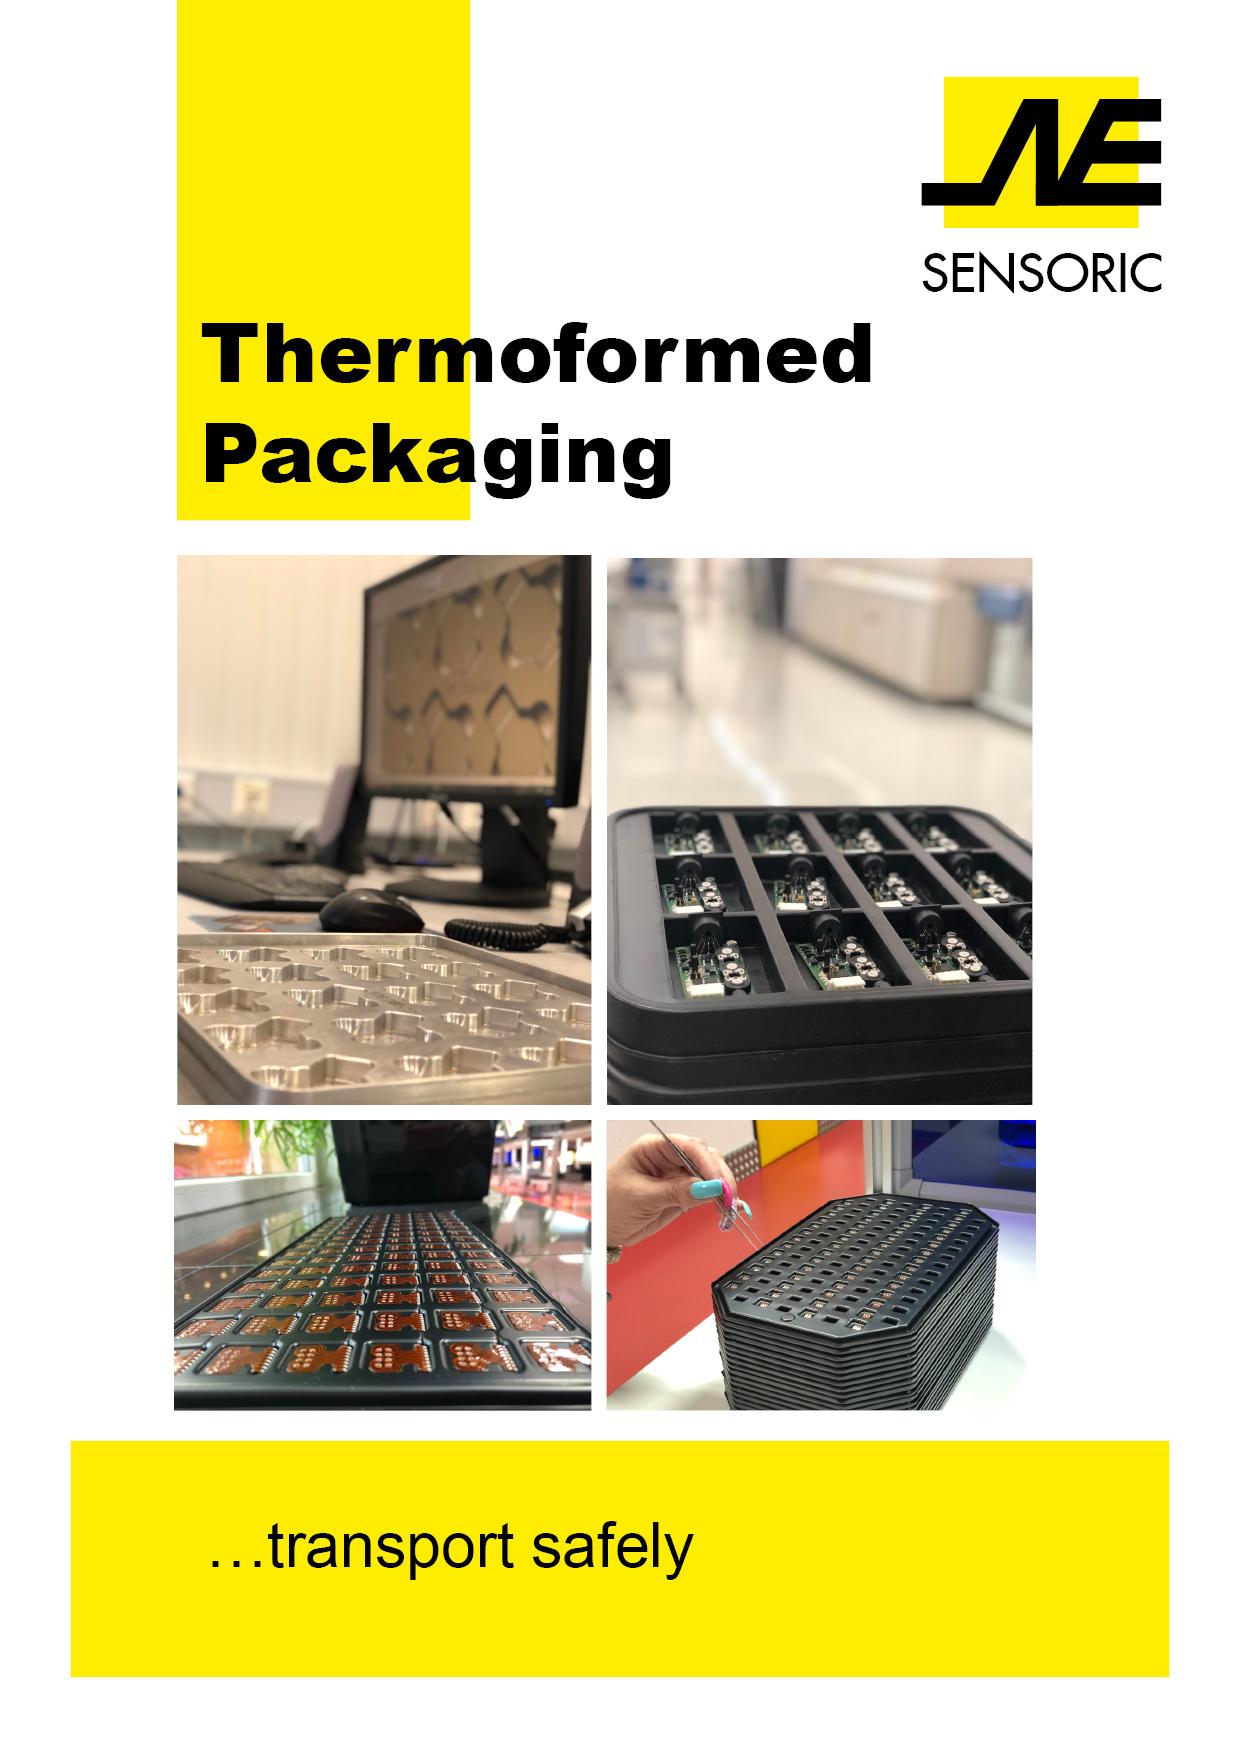 Thermoformed Packaging